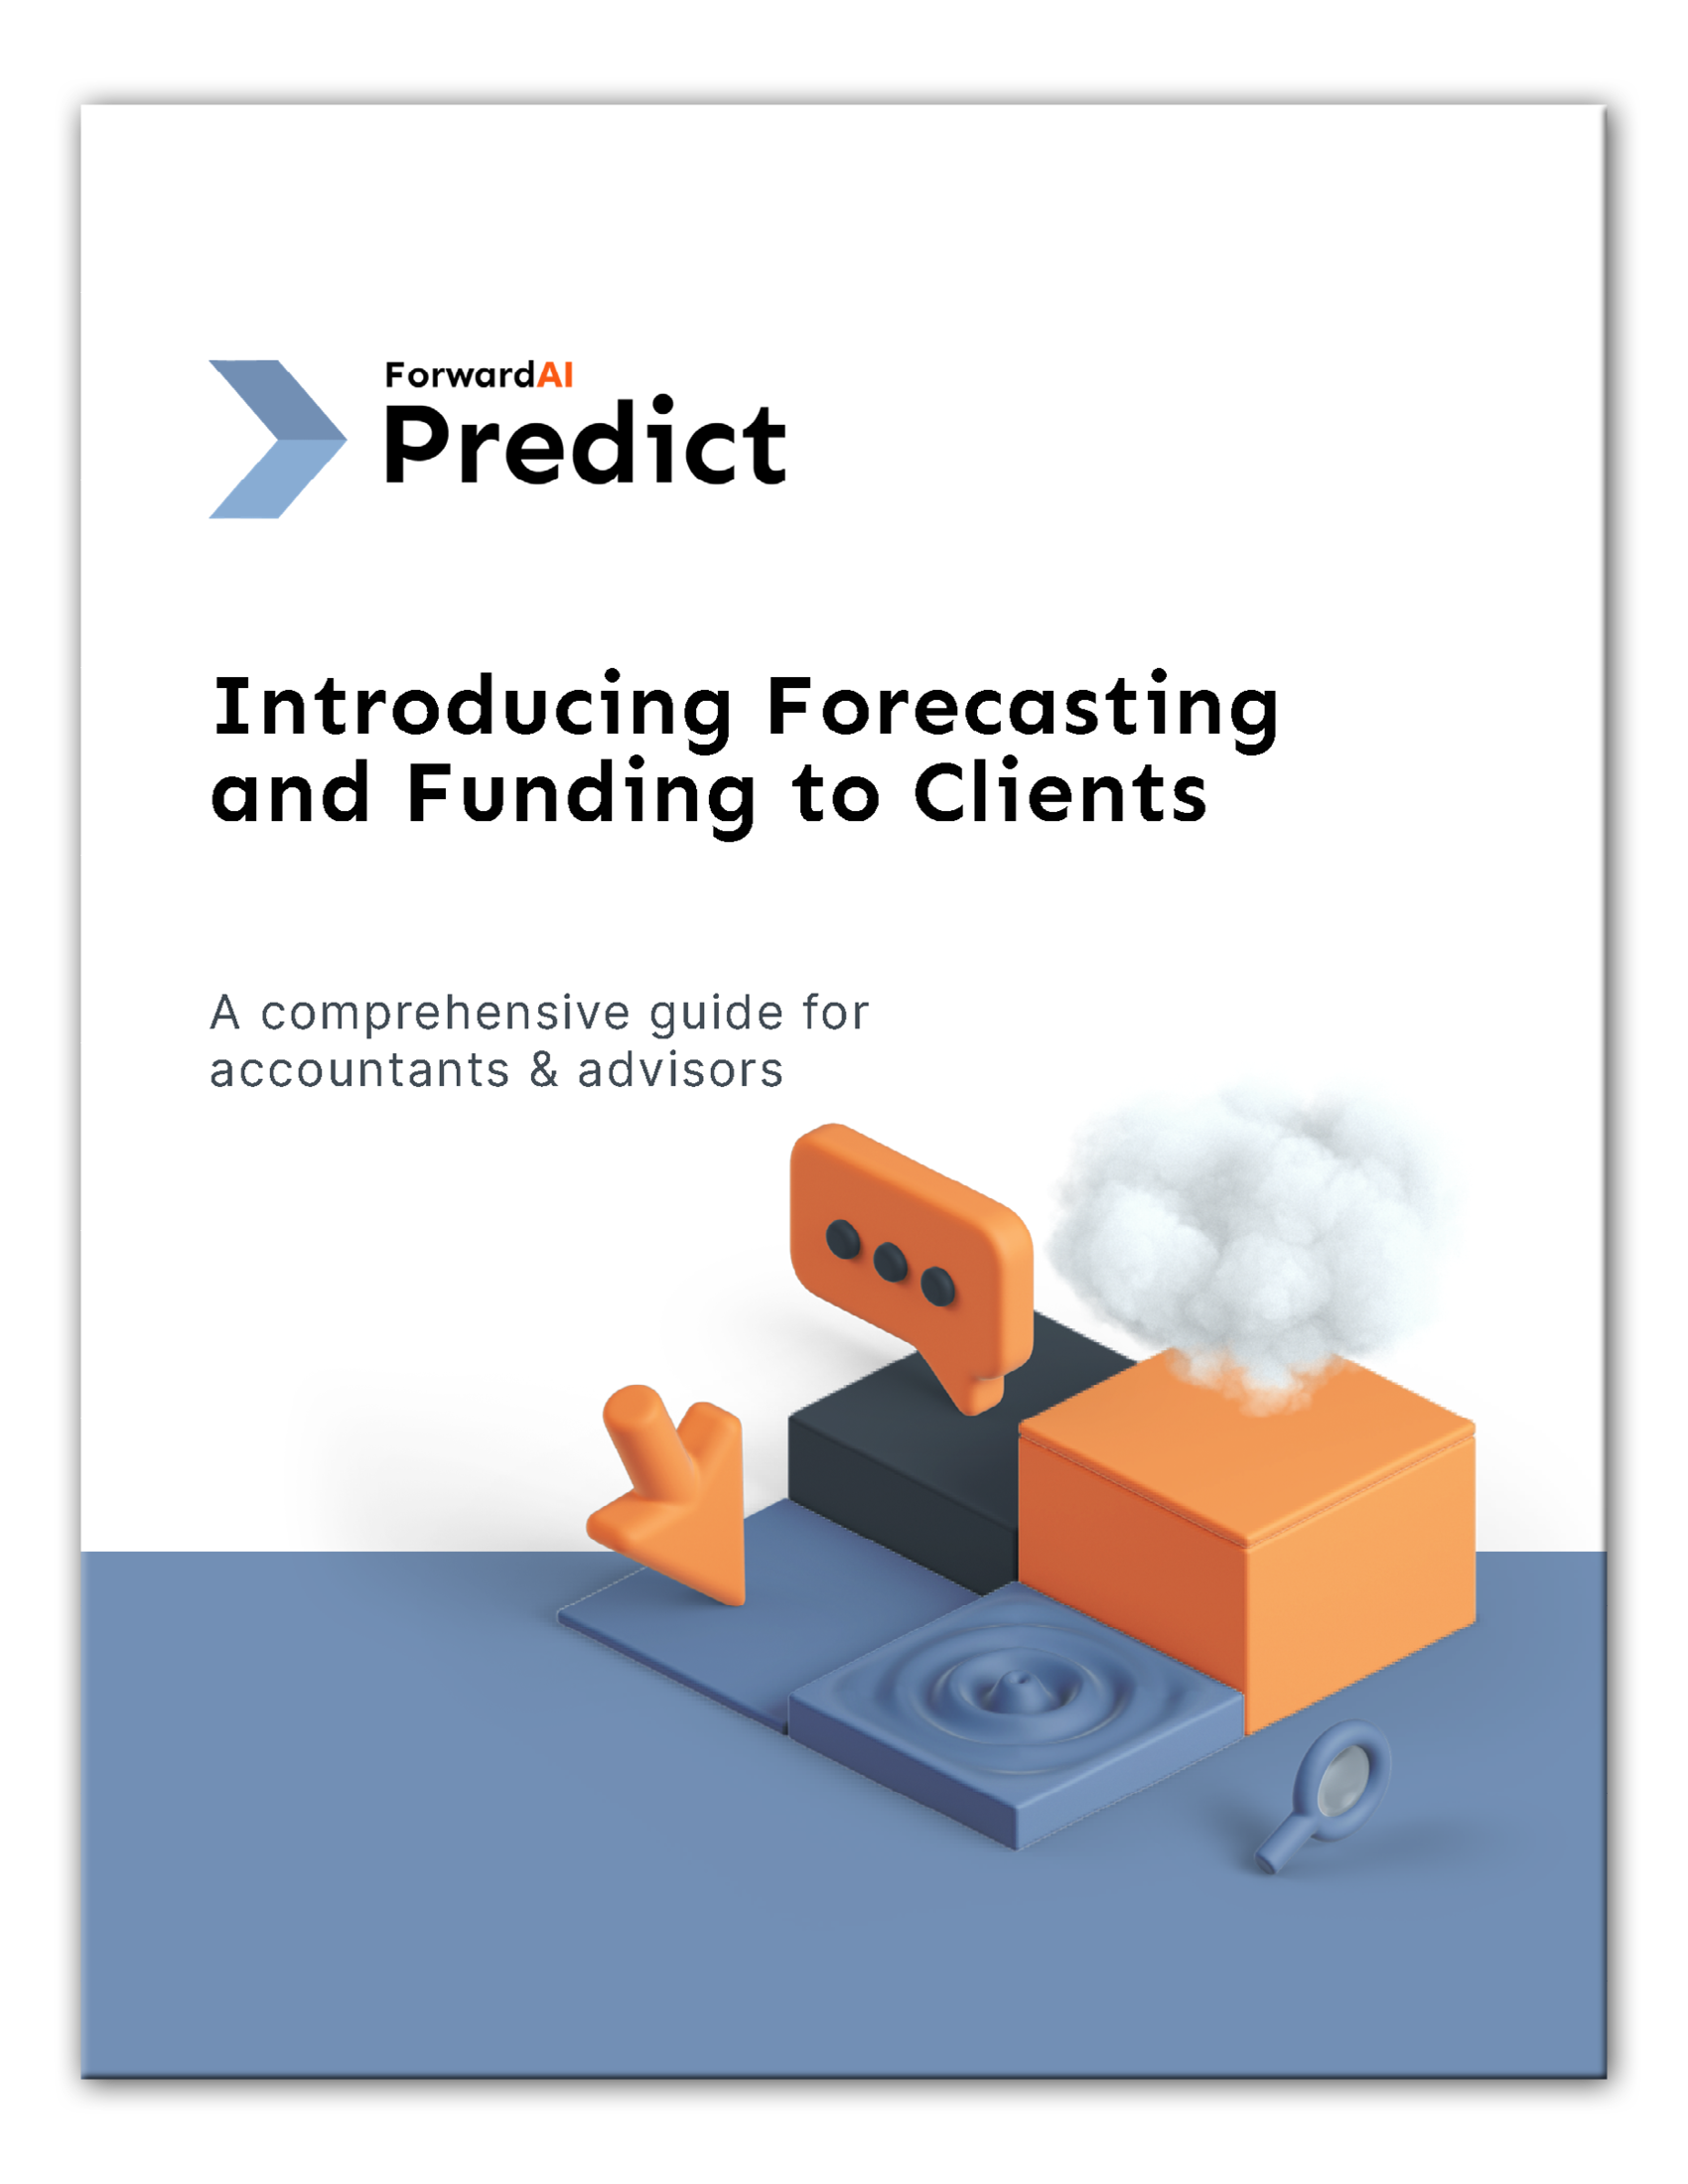 Download Predict Complete Guide to Introducing Forecasting and Funding to Clients